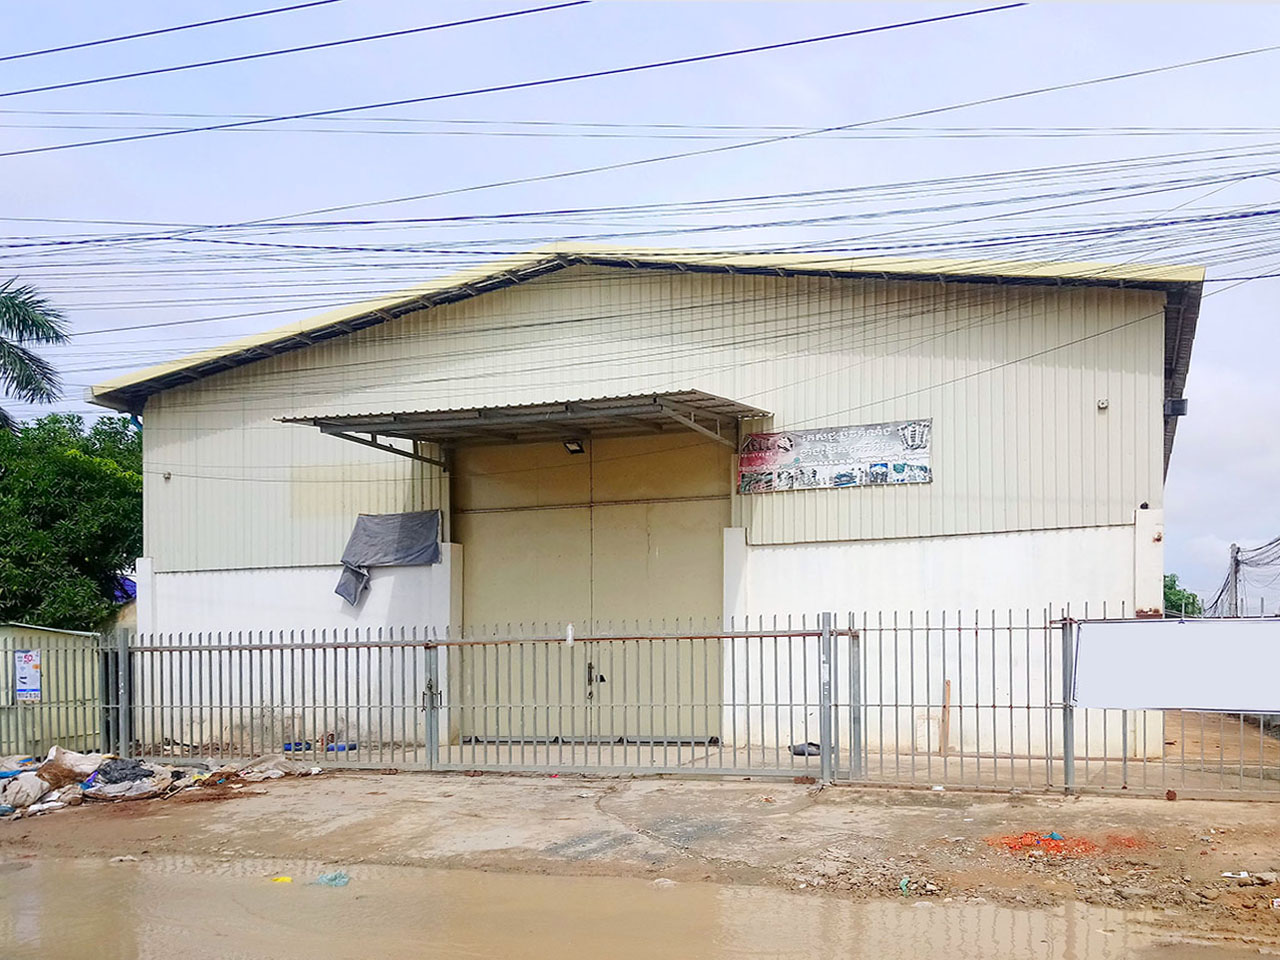 720 Sq m warehouse for rent @ Phnom Penh Thmei